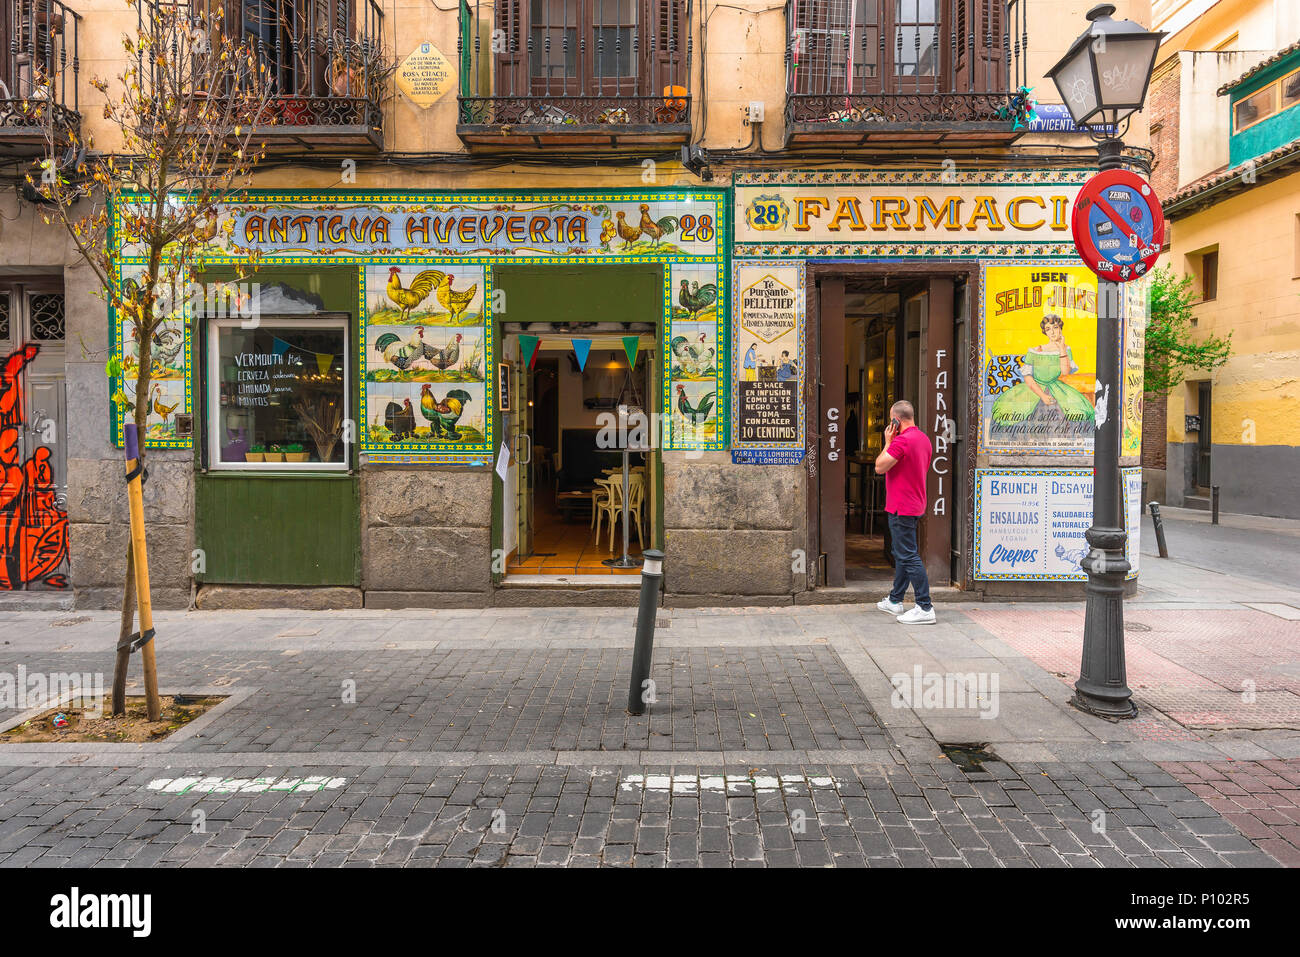 Madrid bar, view of a bar in the Malasana district of Madrid which has retained the original azulejo tiles and signs of a former local pharmacy. - Stock Image